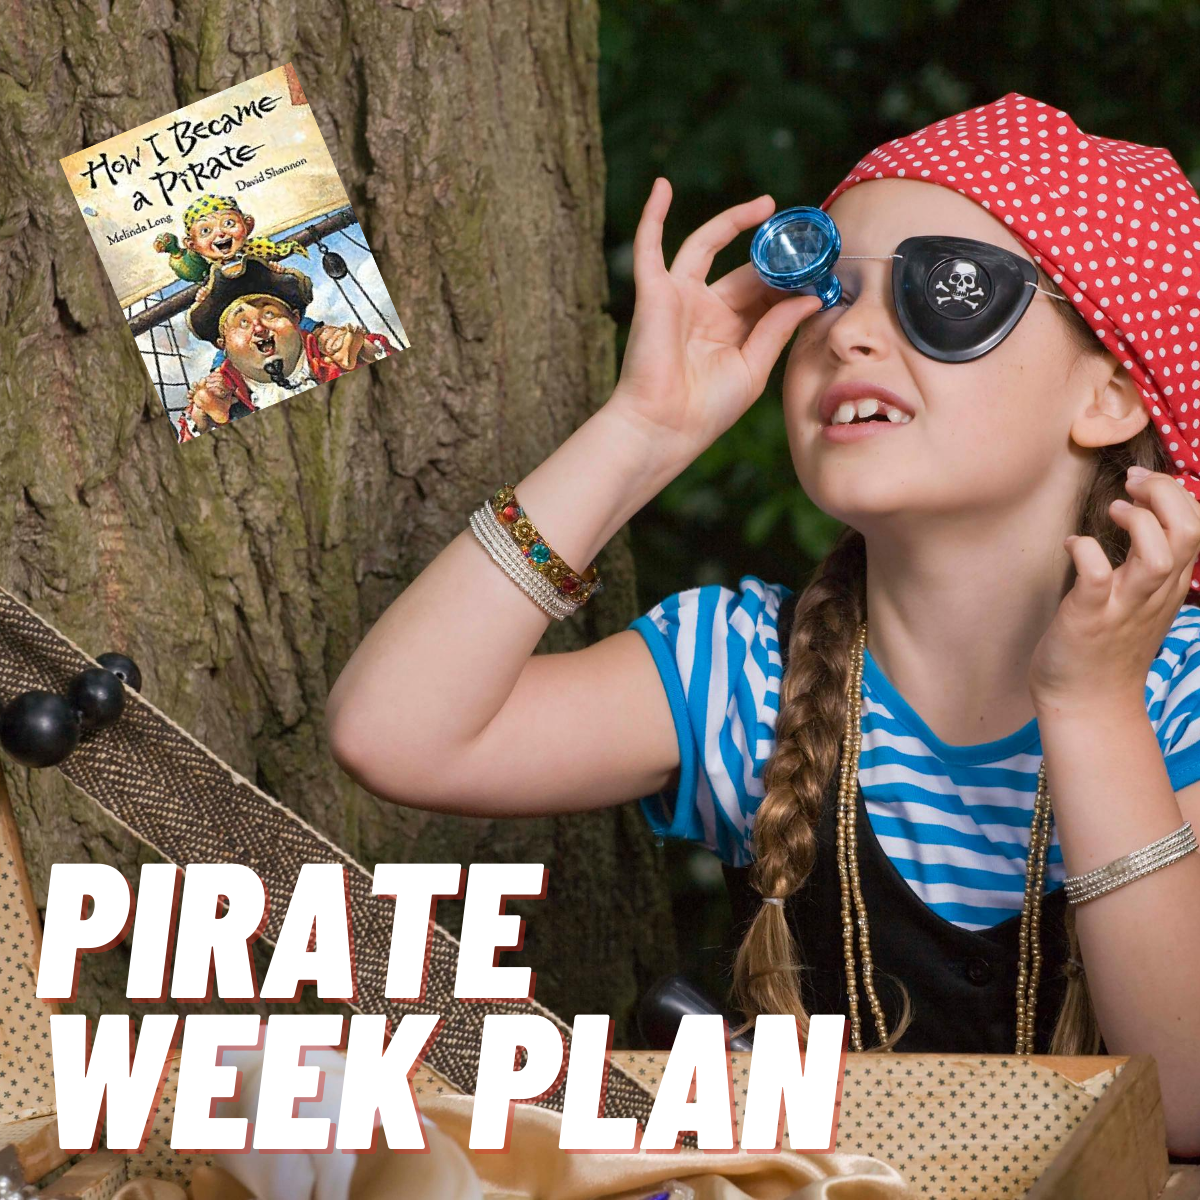 Pirate Week Activities for Preschoolers Featuring How I Became a Pirate